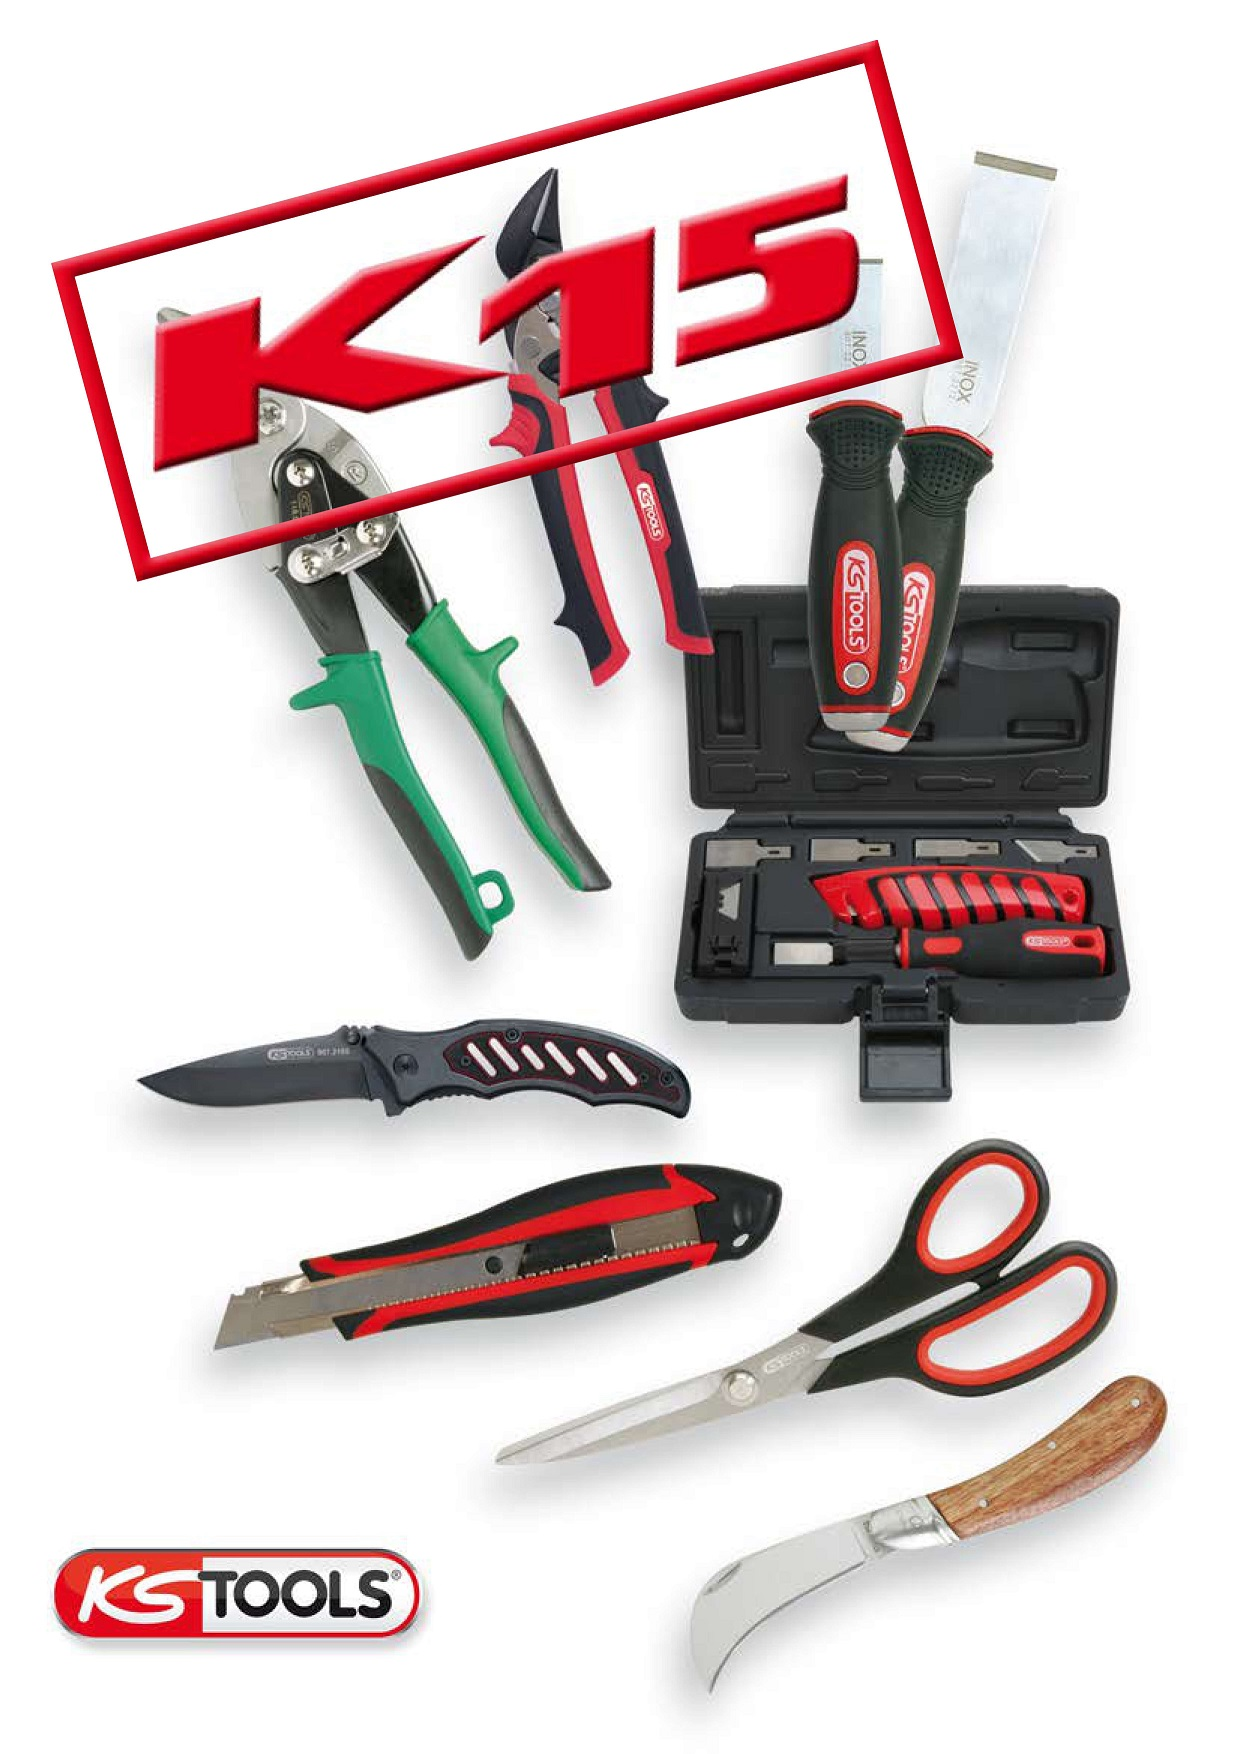 CUTTING- AND SCRAPING TOOLS